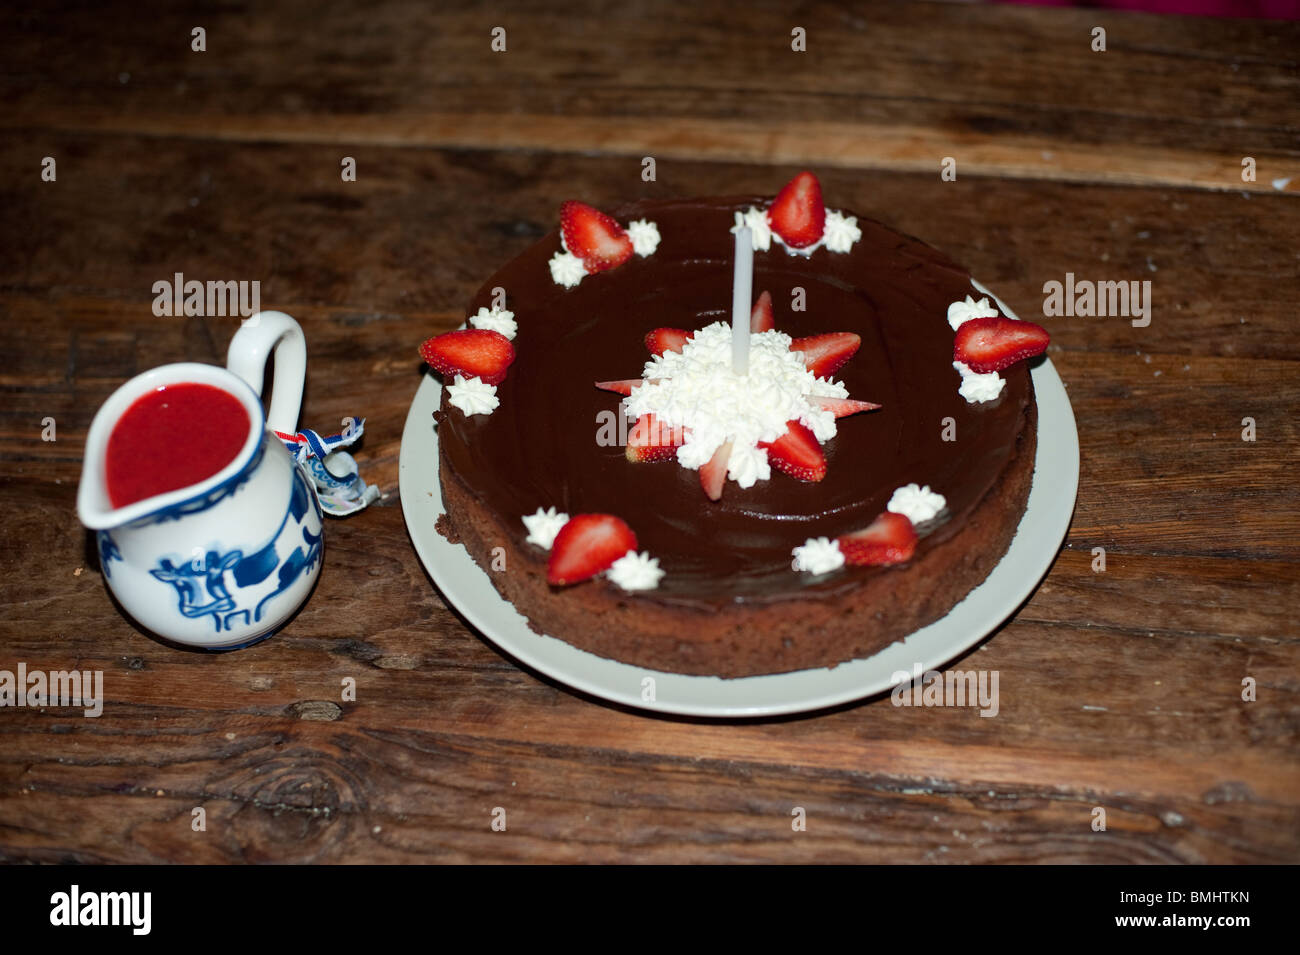 Chocolate Strawberry Birthday Cake With One Candle And A Delfts Blue Jar Of Sauce